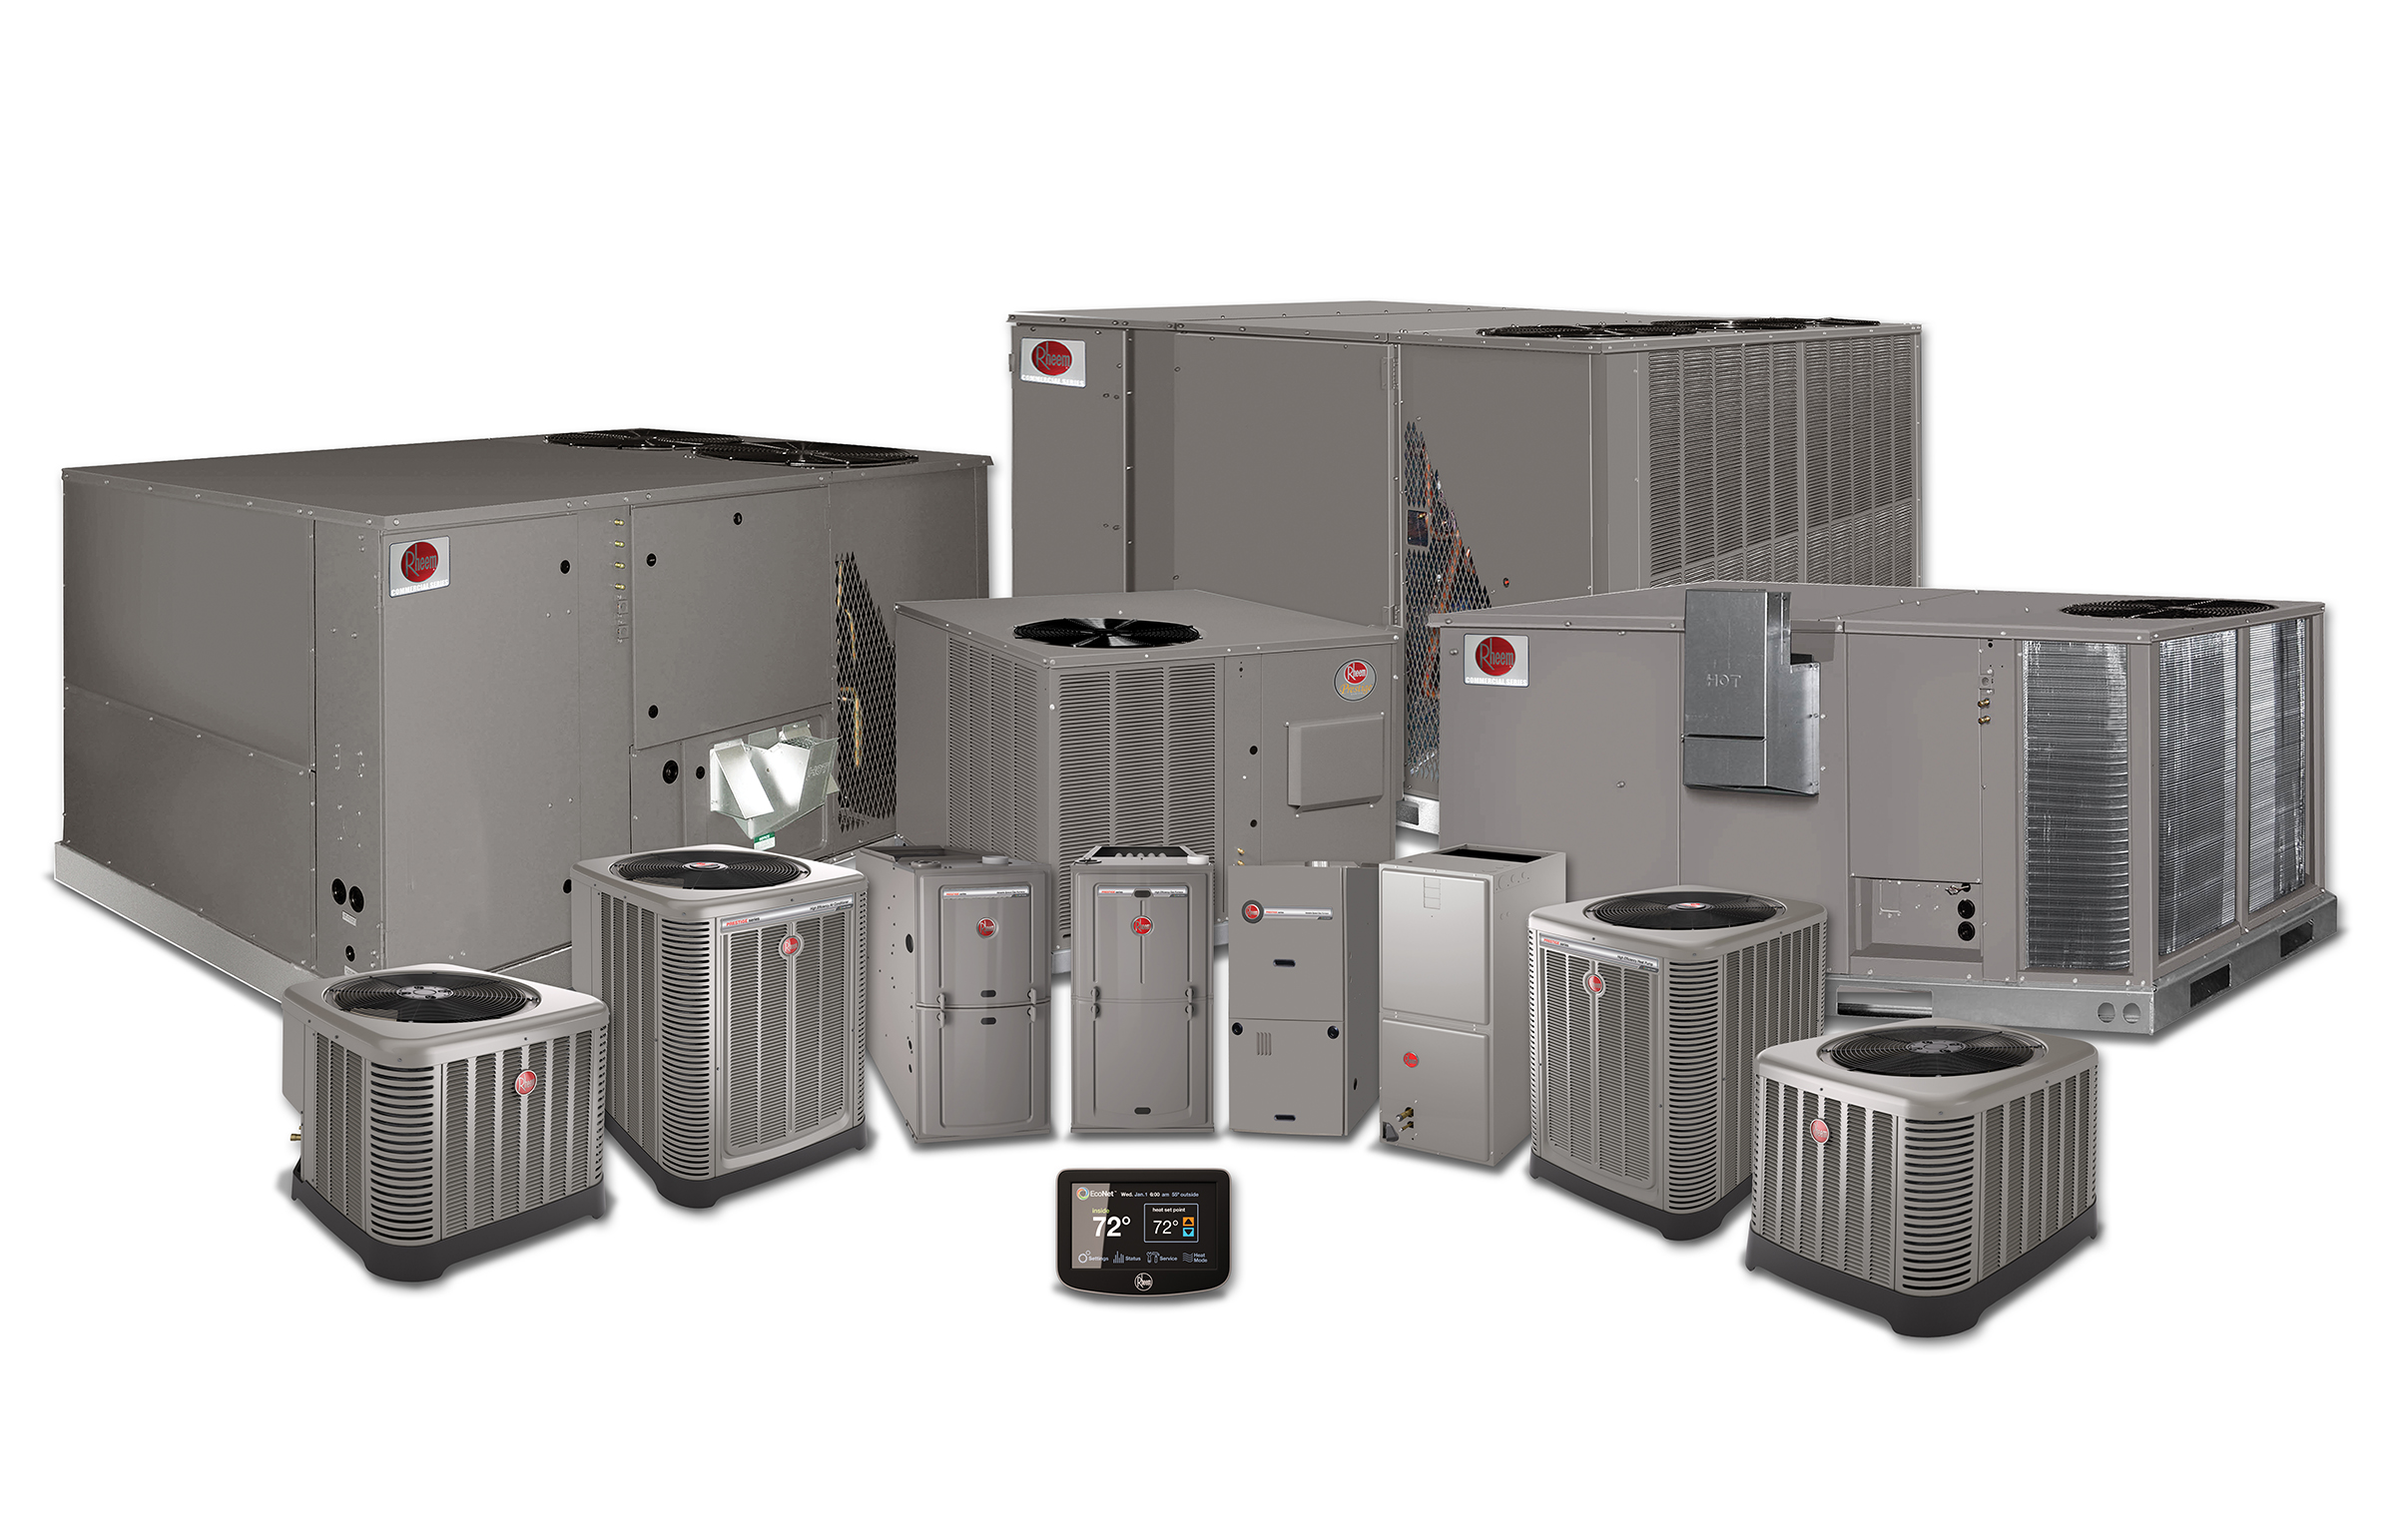 Rheem Res-Comcrl Htg-Clg-Family Group A-wEcoNetControl